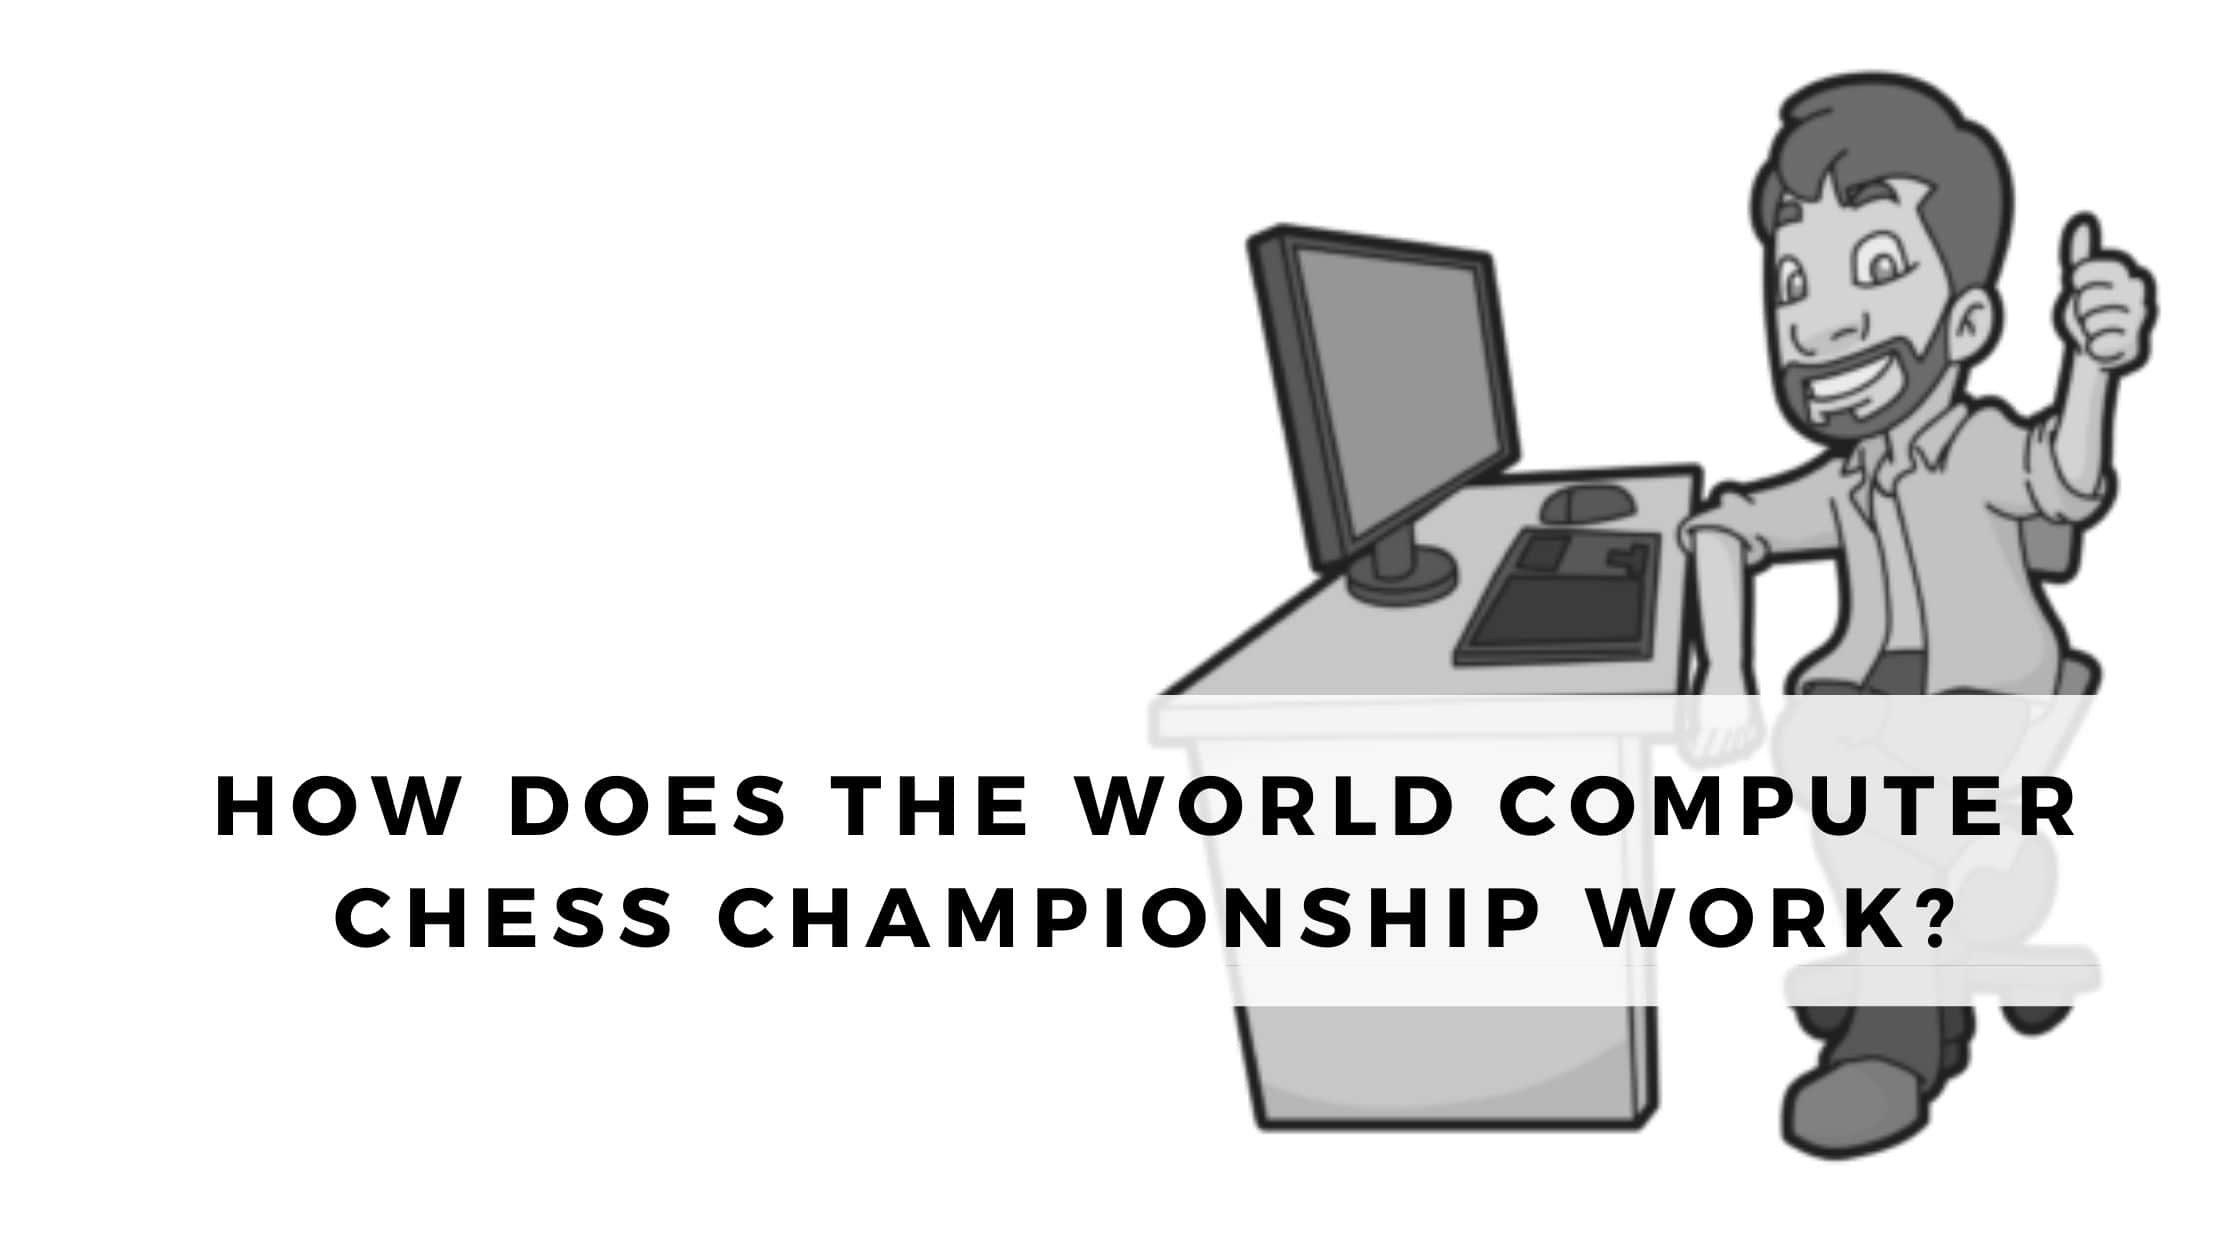 How does the World Computer Chess Championship Work?